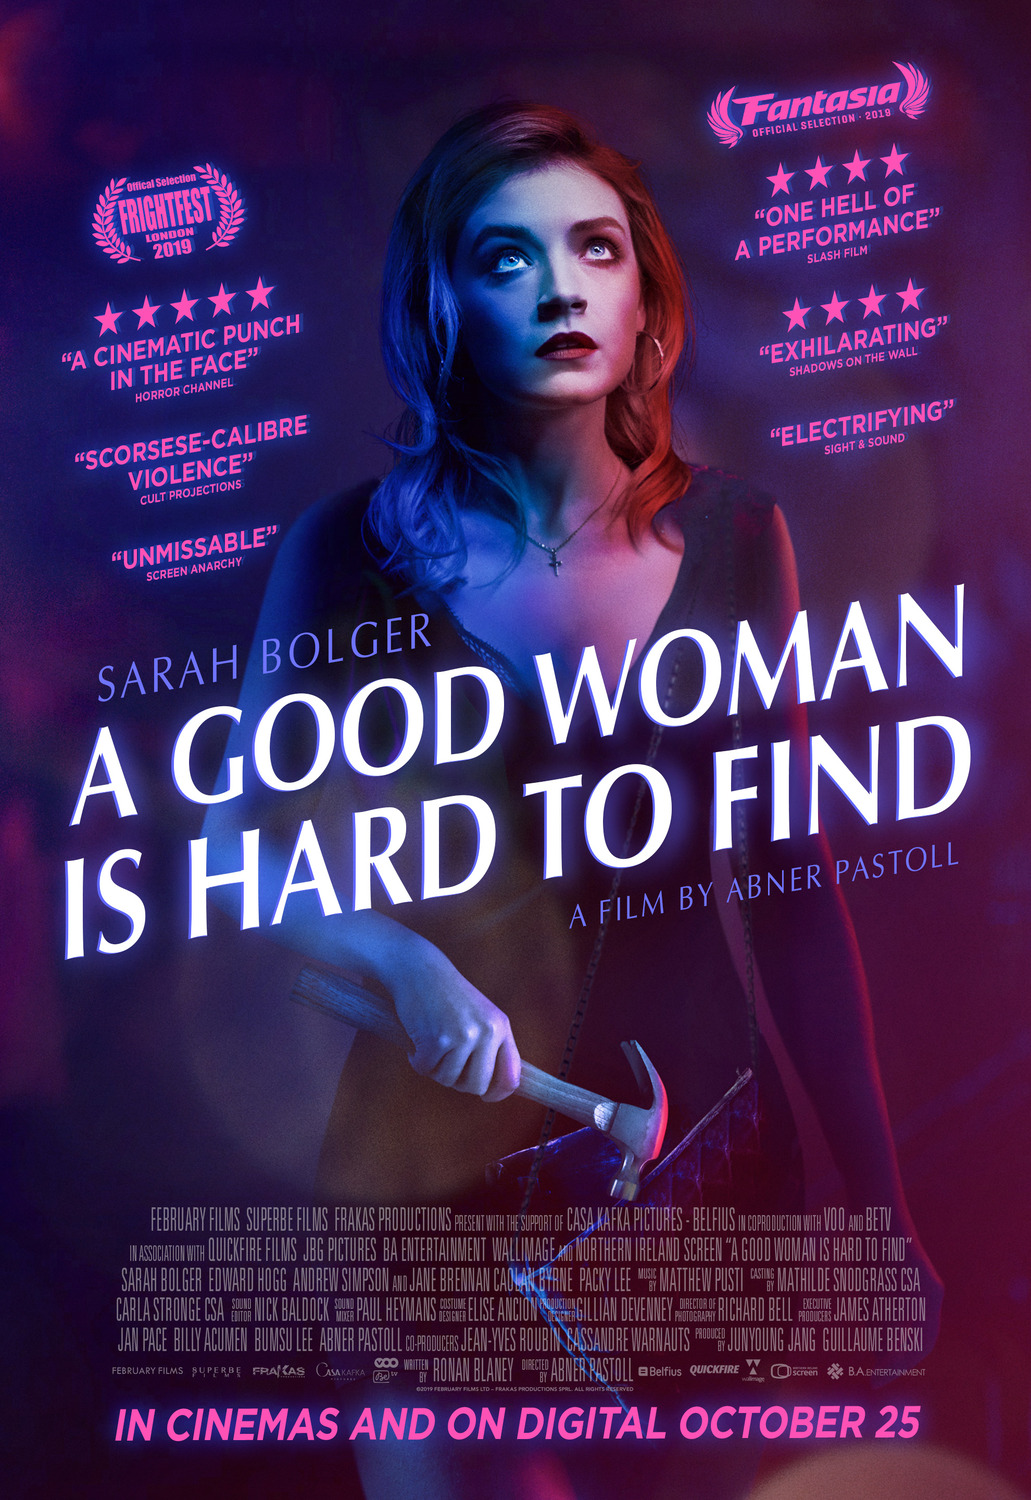 Rasti gerą moterį sunku (2019) / A Good Woman Is Hard to Find